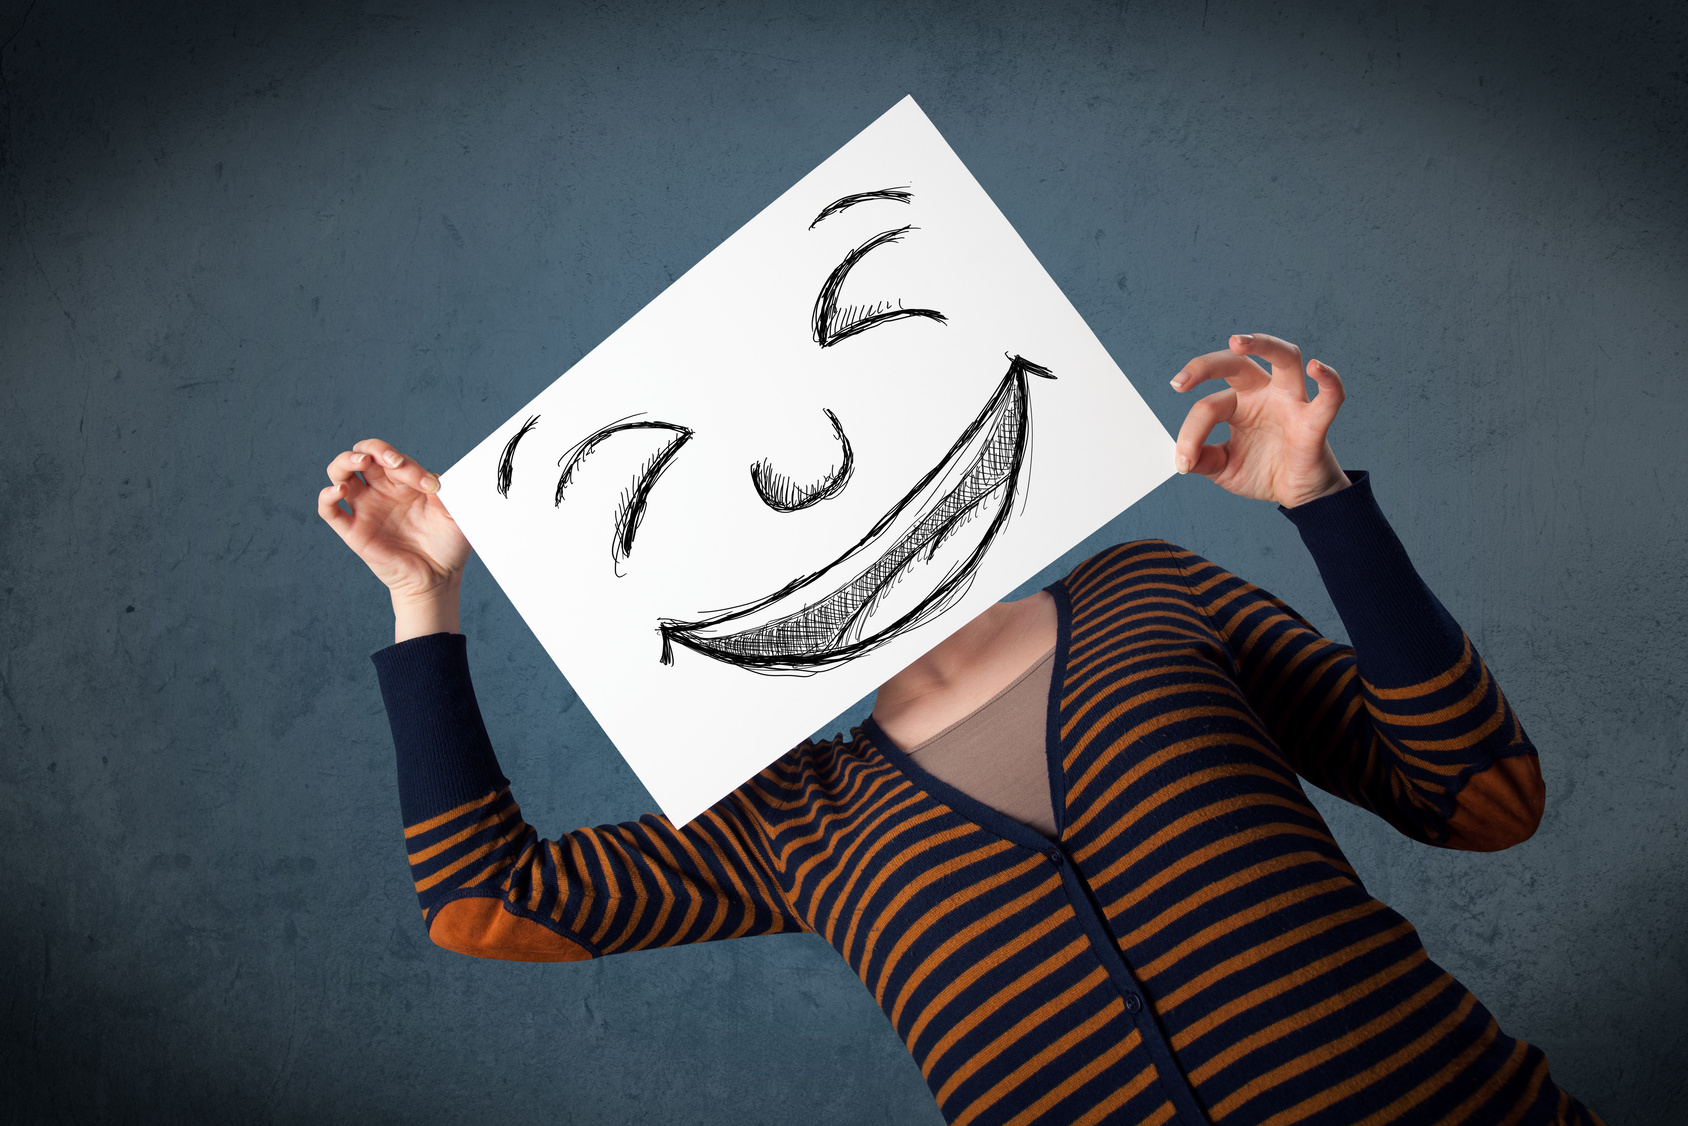 Woman with drawed smiley face on a paper in front of her head